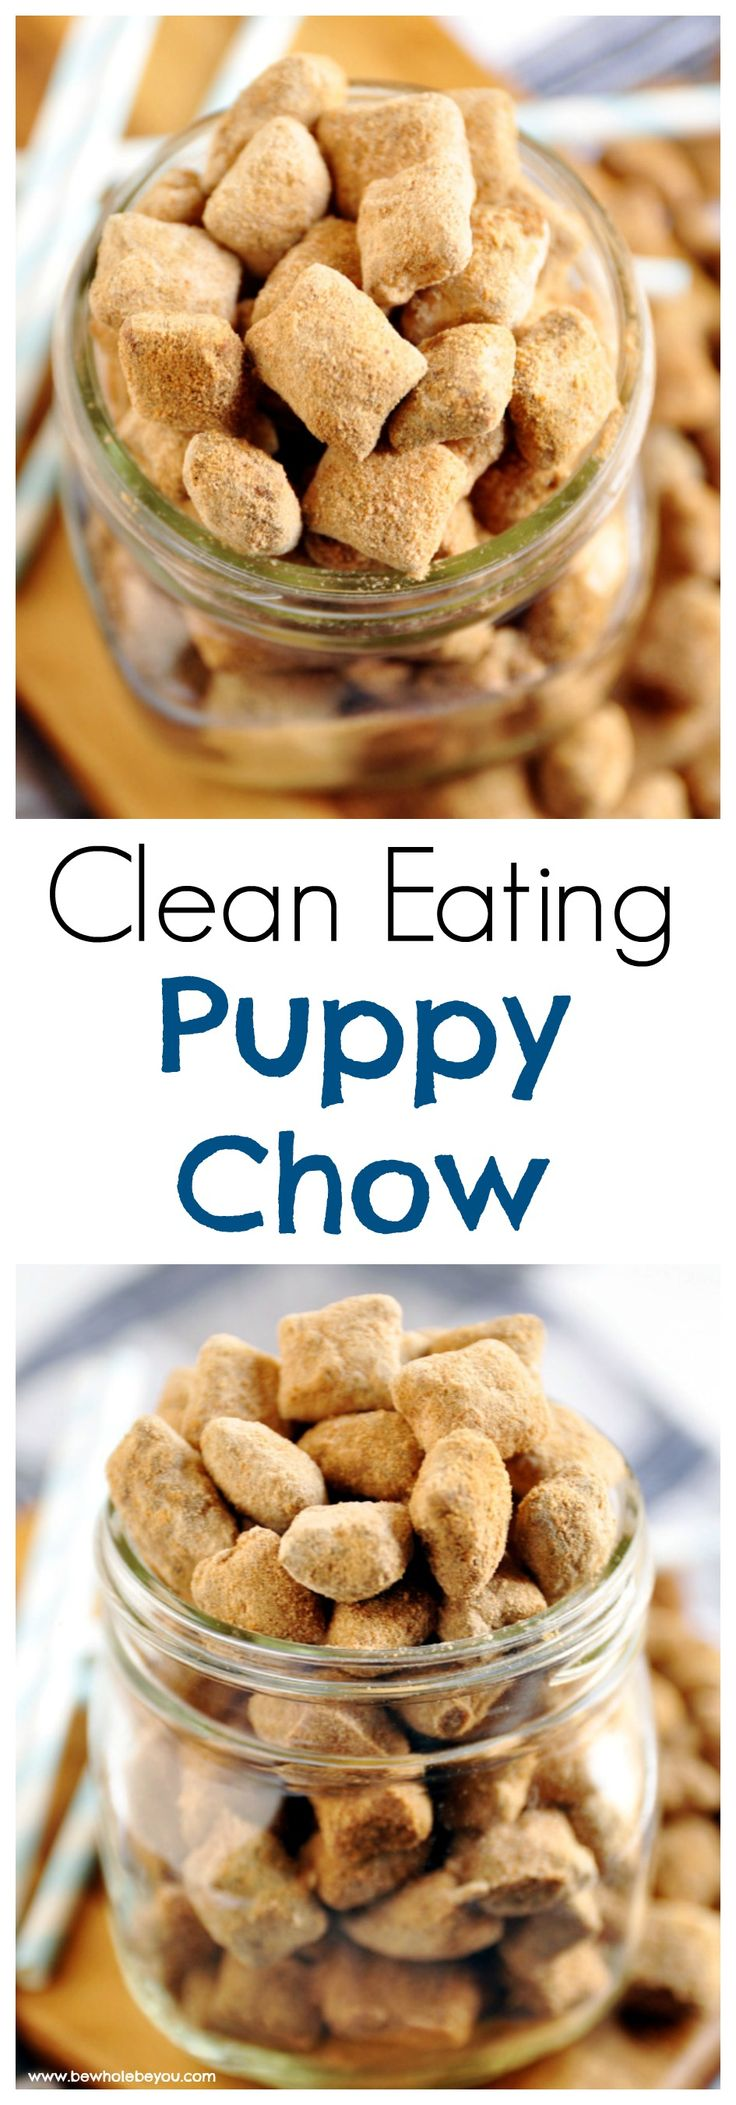 Clean Eating Puppy Chow - Be Whole. Be You.